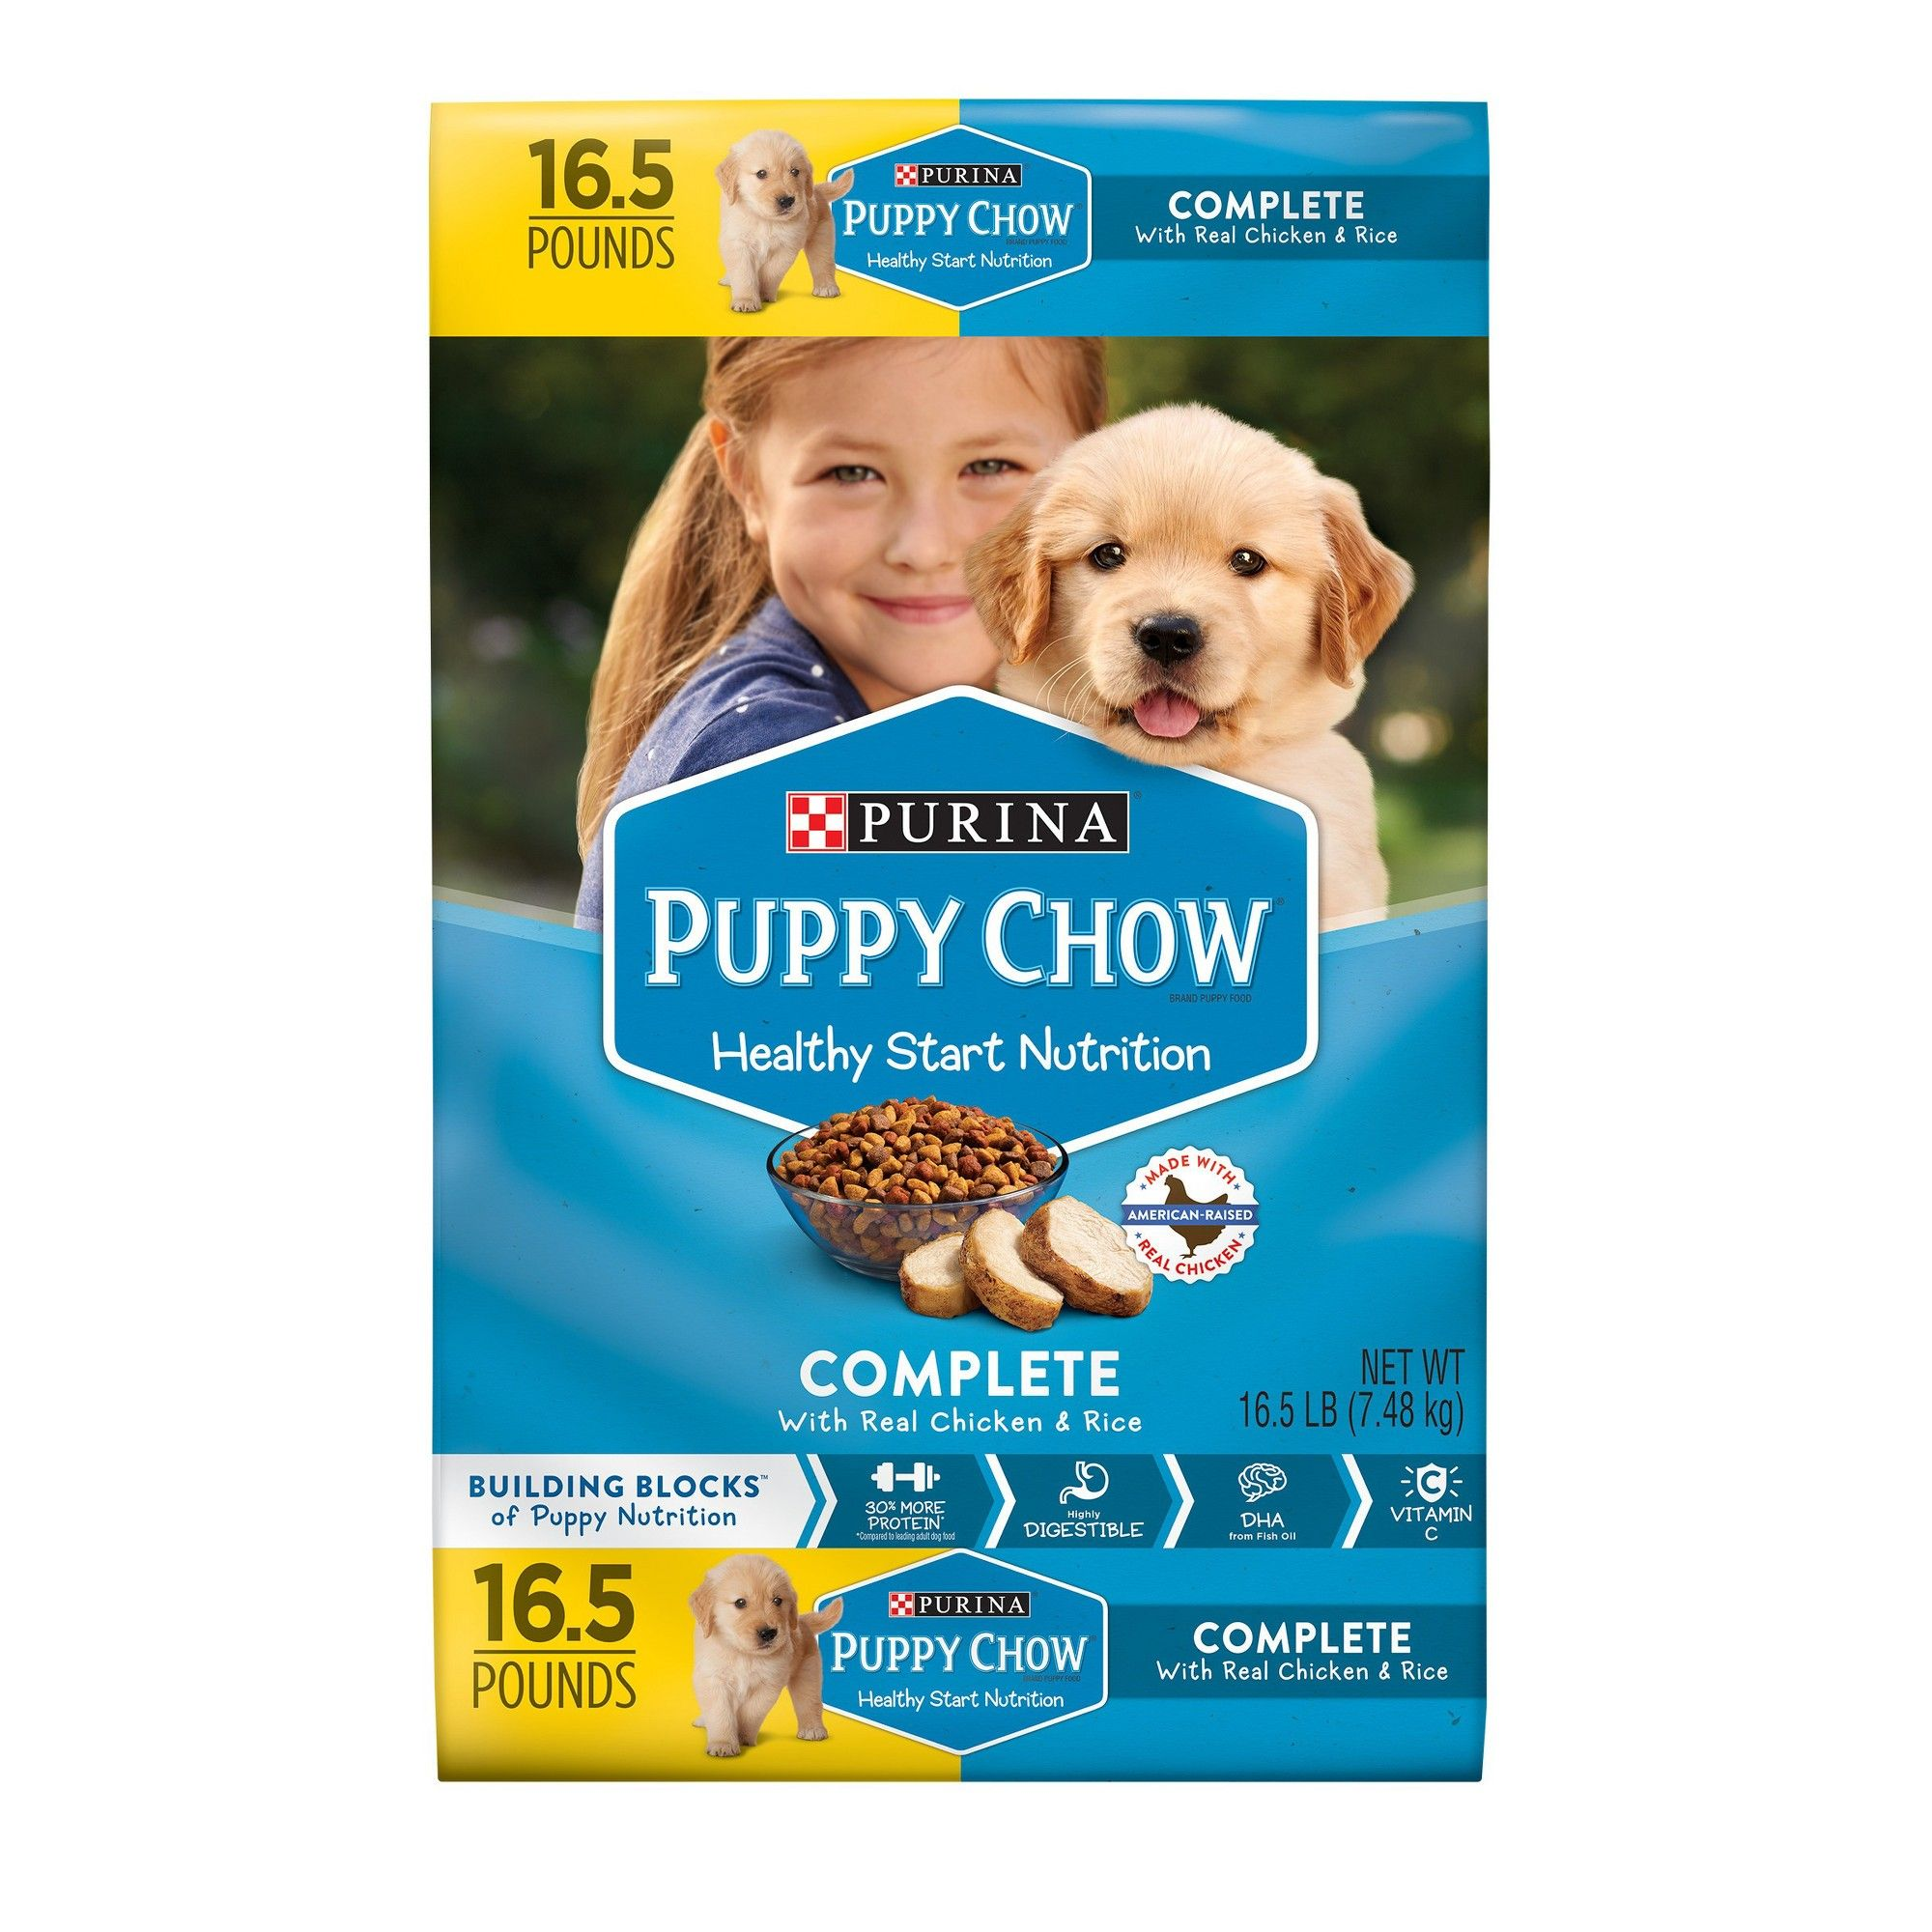 Purina Puppy Chow Complete Chicken Dry Dog Food 16 5lbs Purina